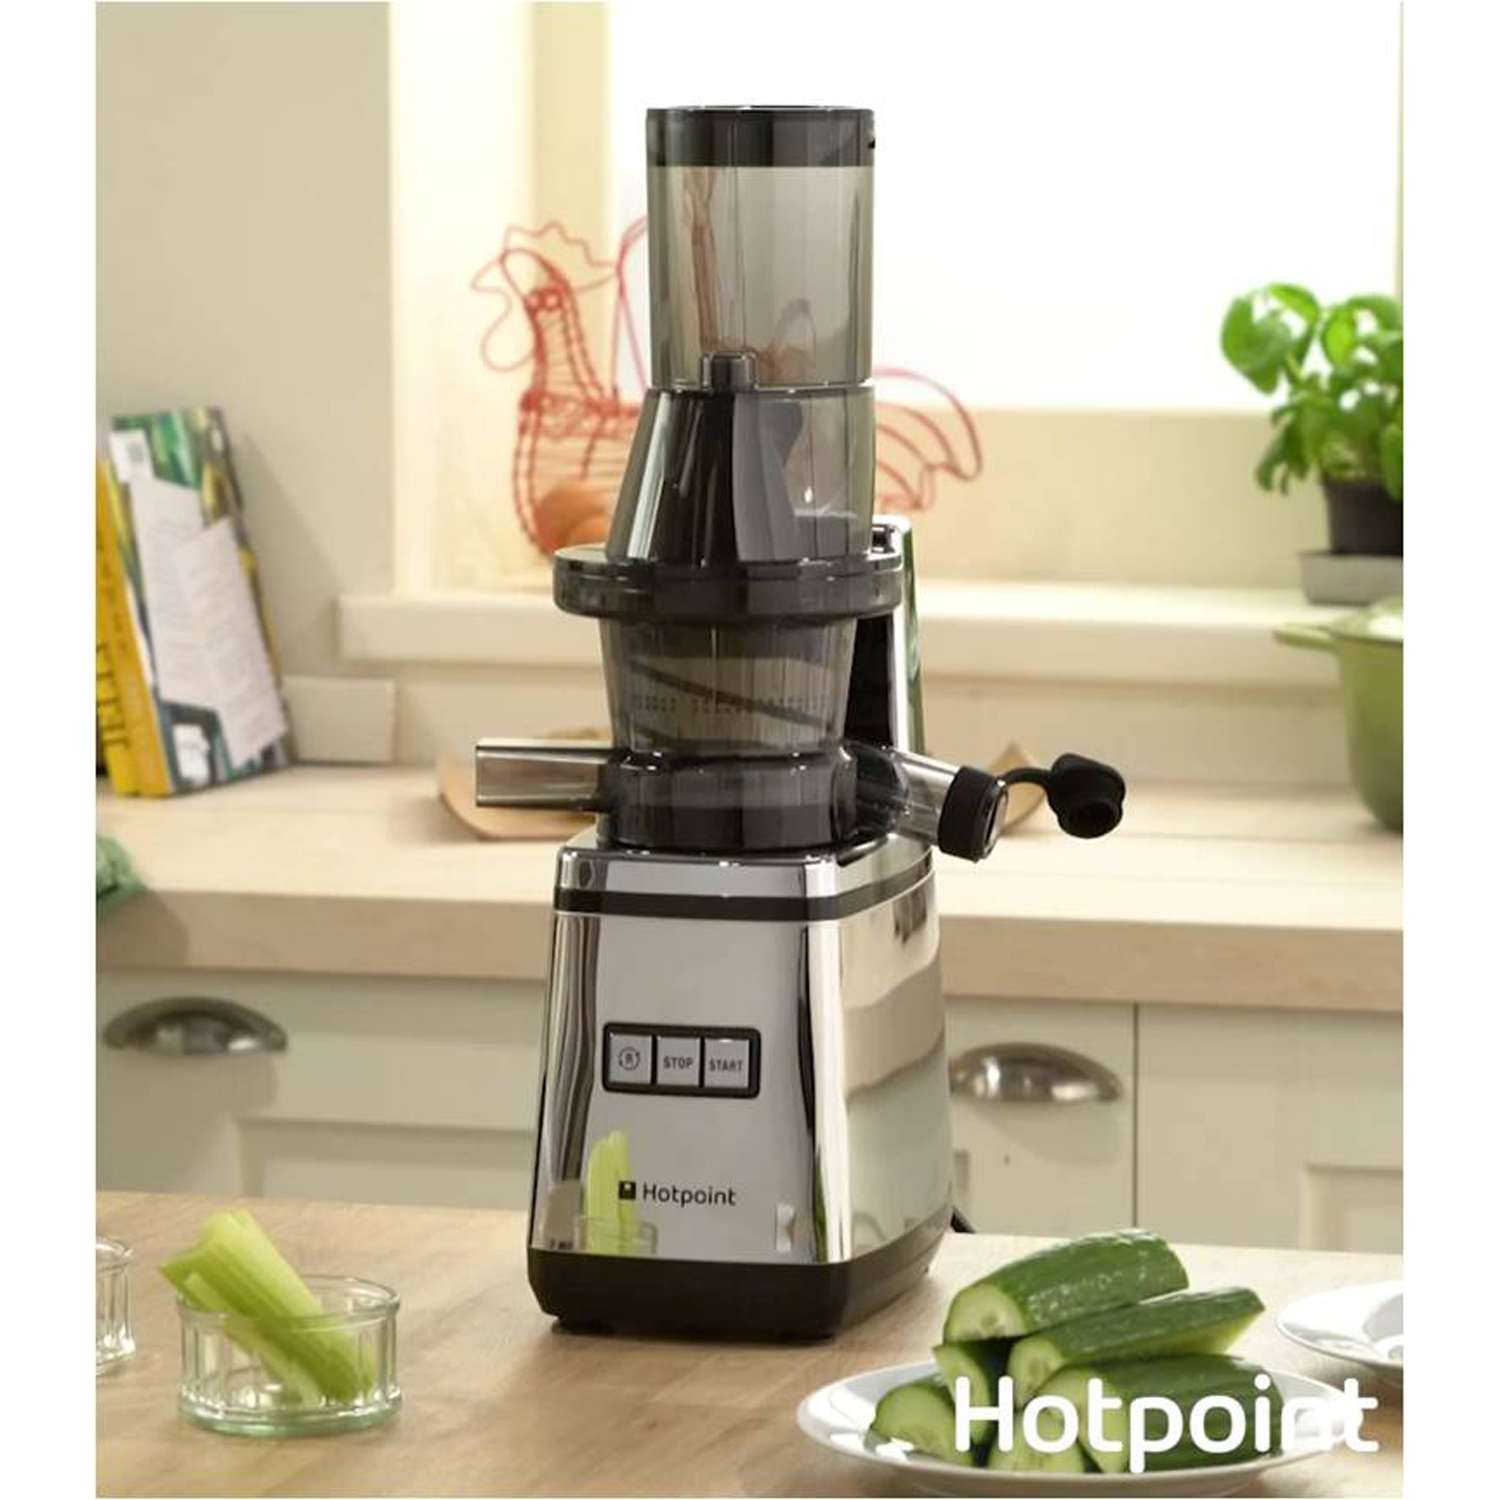 Hotpoint SJ15XLUP0UK Slow Juicer in Silver eBay